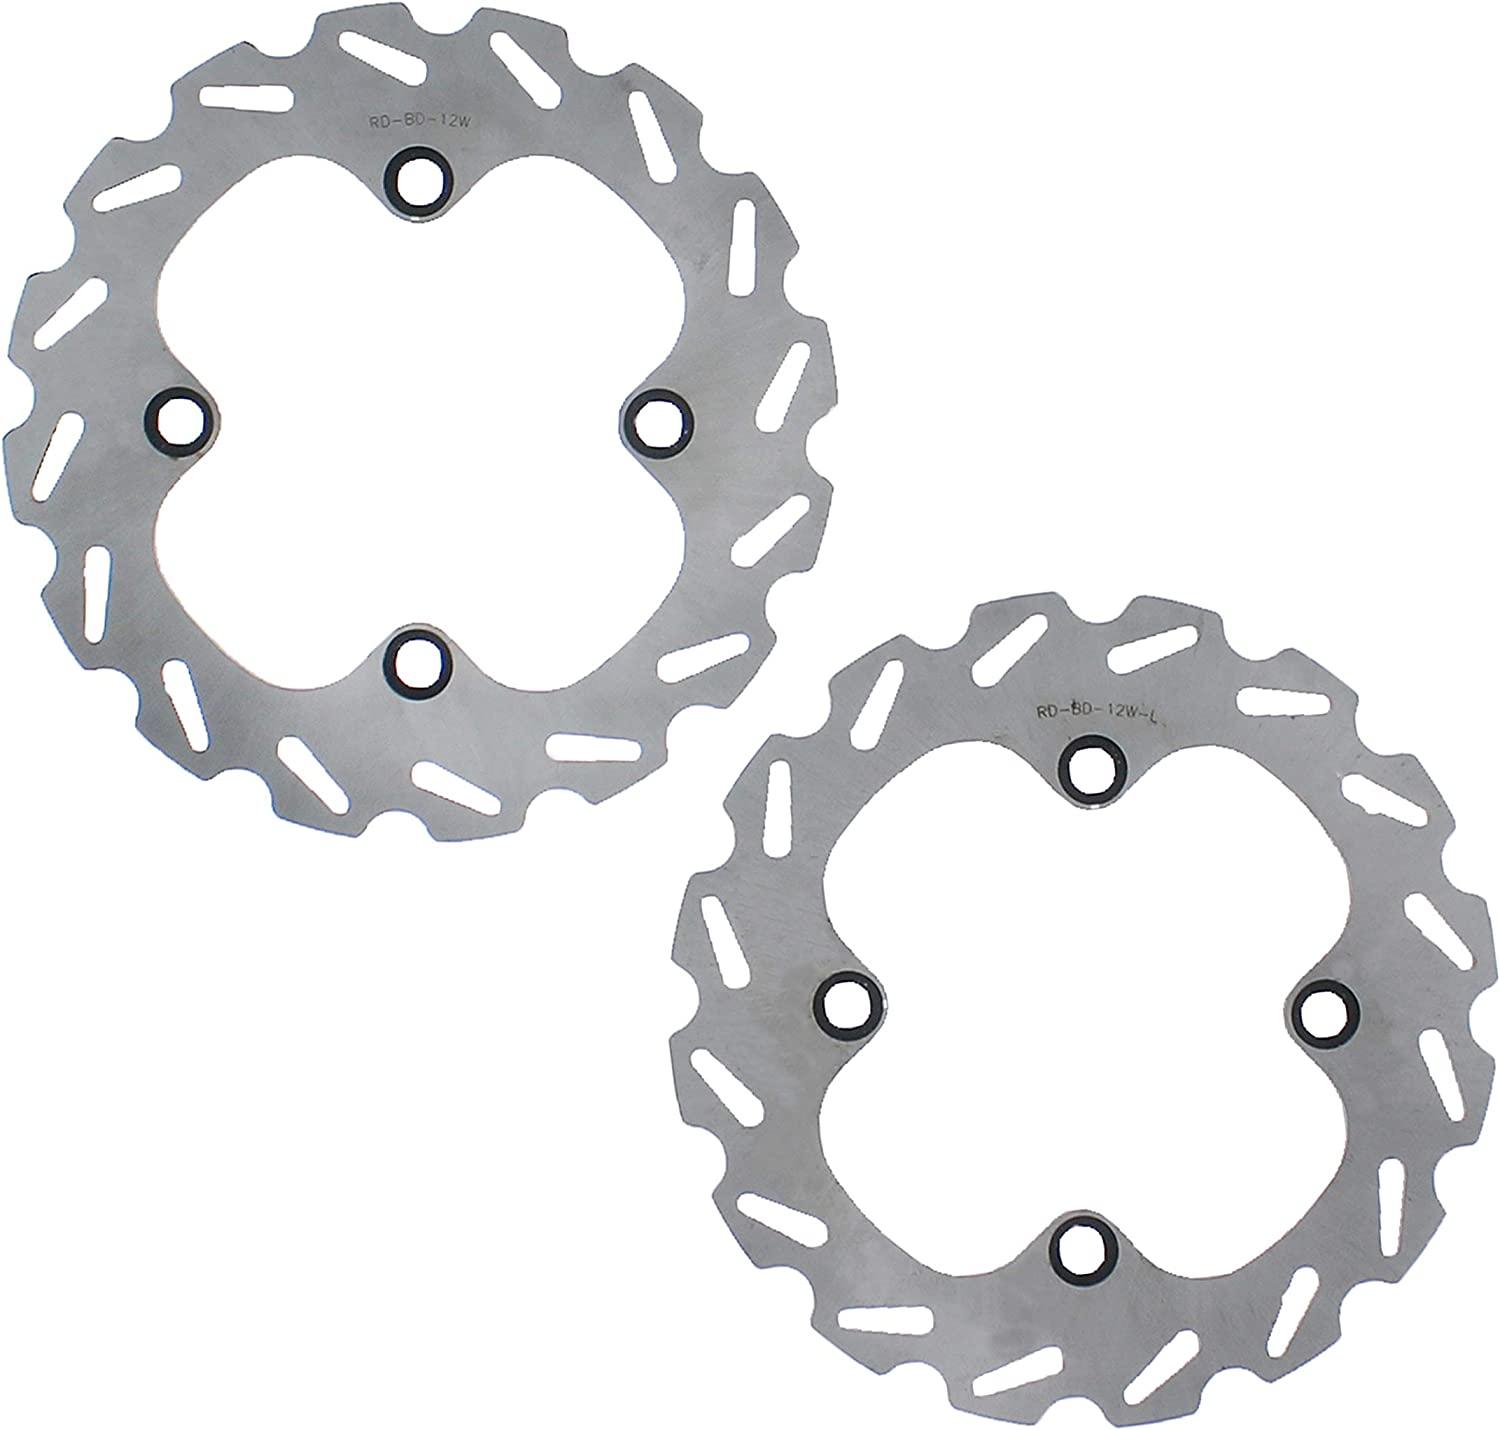 Brake Rotors Discs for Yamaha 700 Grizzly YFM700 2007-2017 Front MudRat Brakes